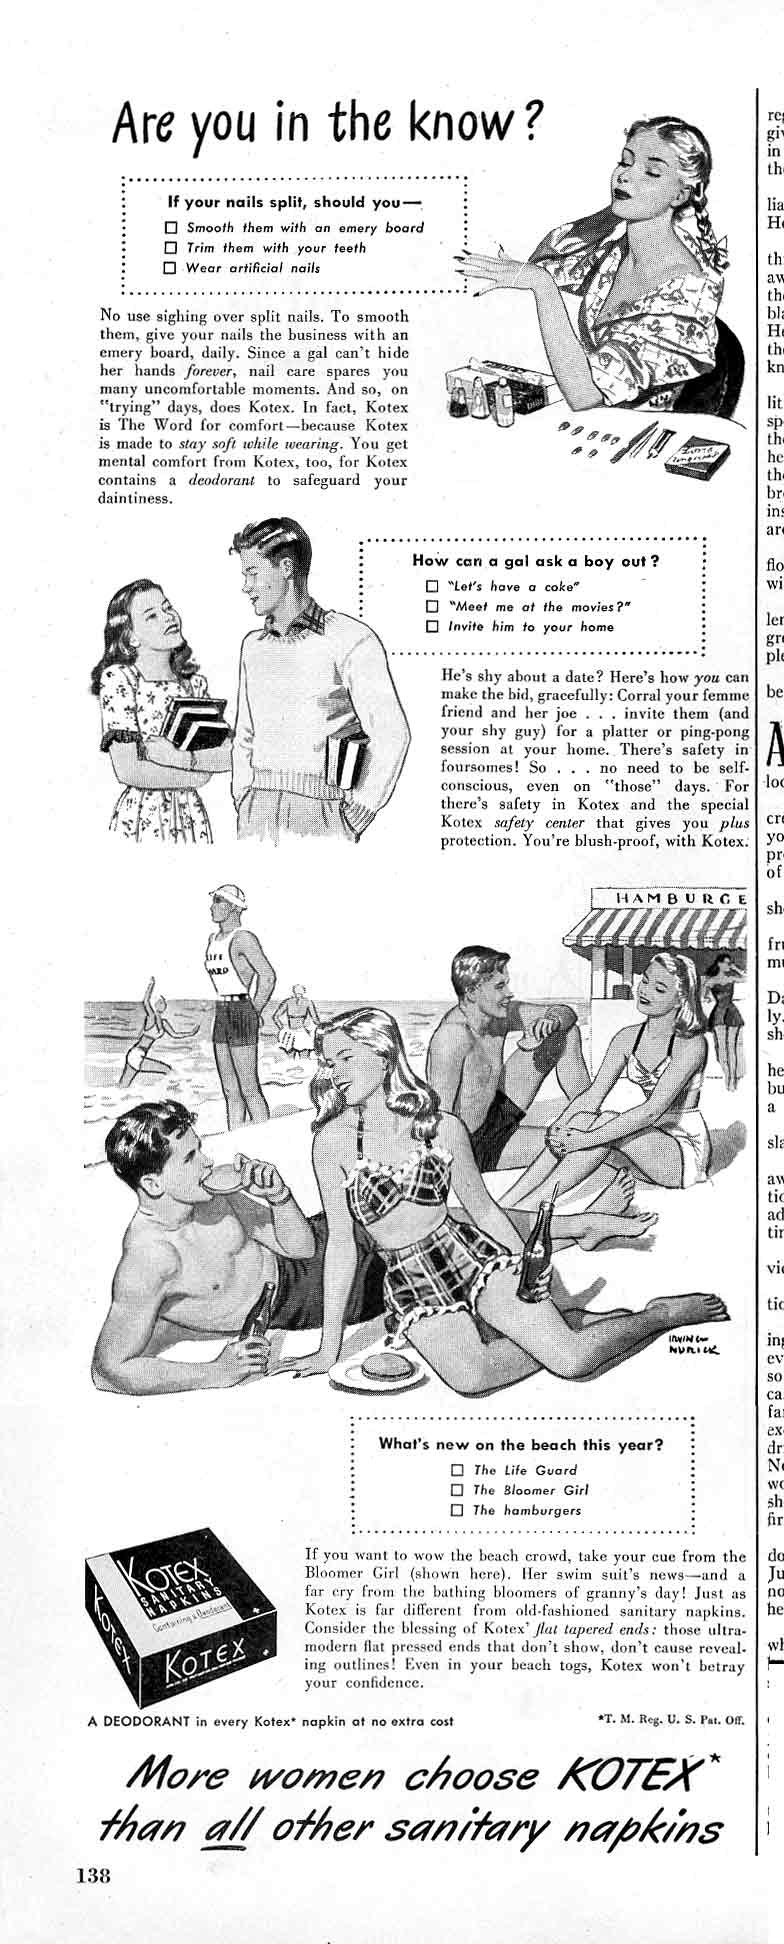 Did people masturbait in the 40s and 1950s?